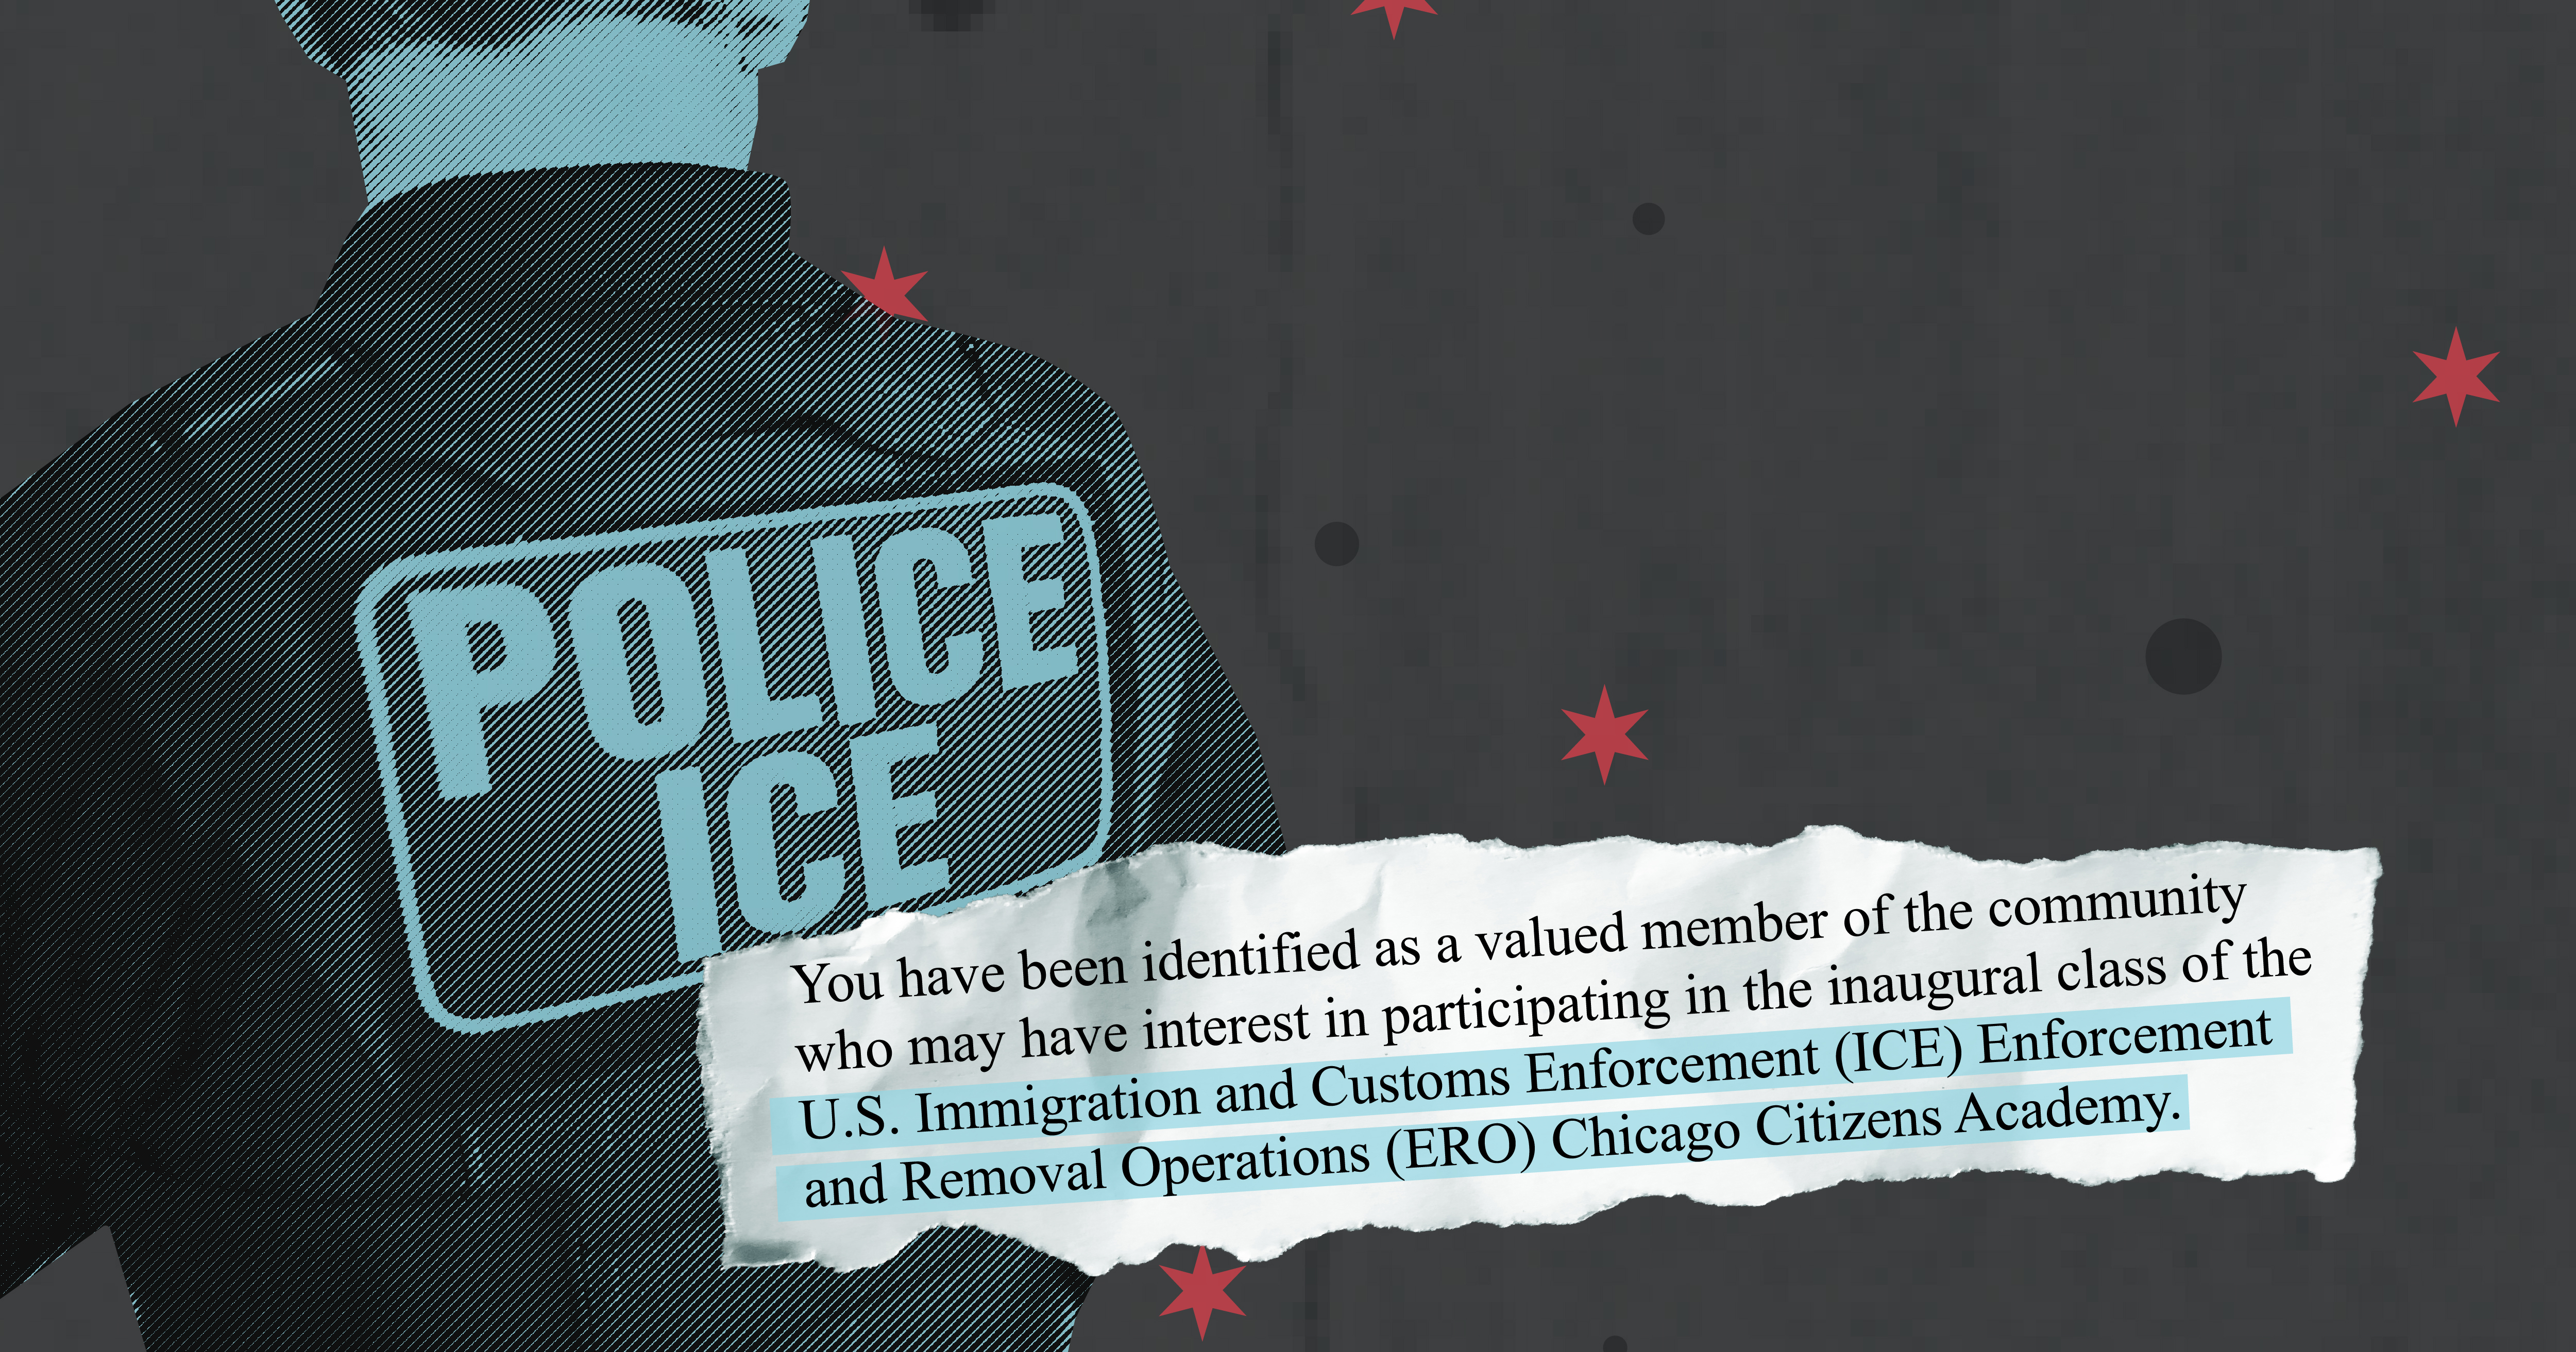 Tell Congress to block funding for ICE citizen academy in Chicago